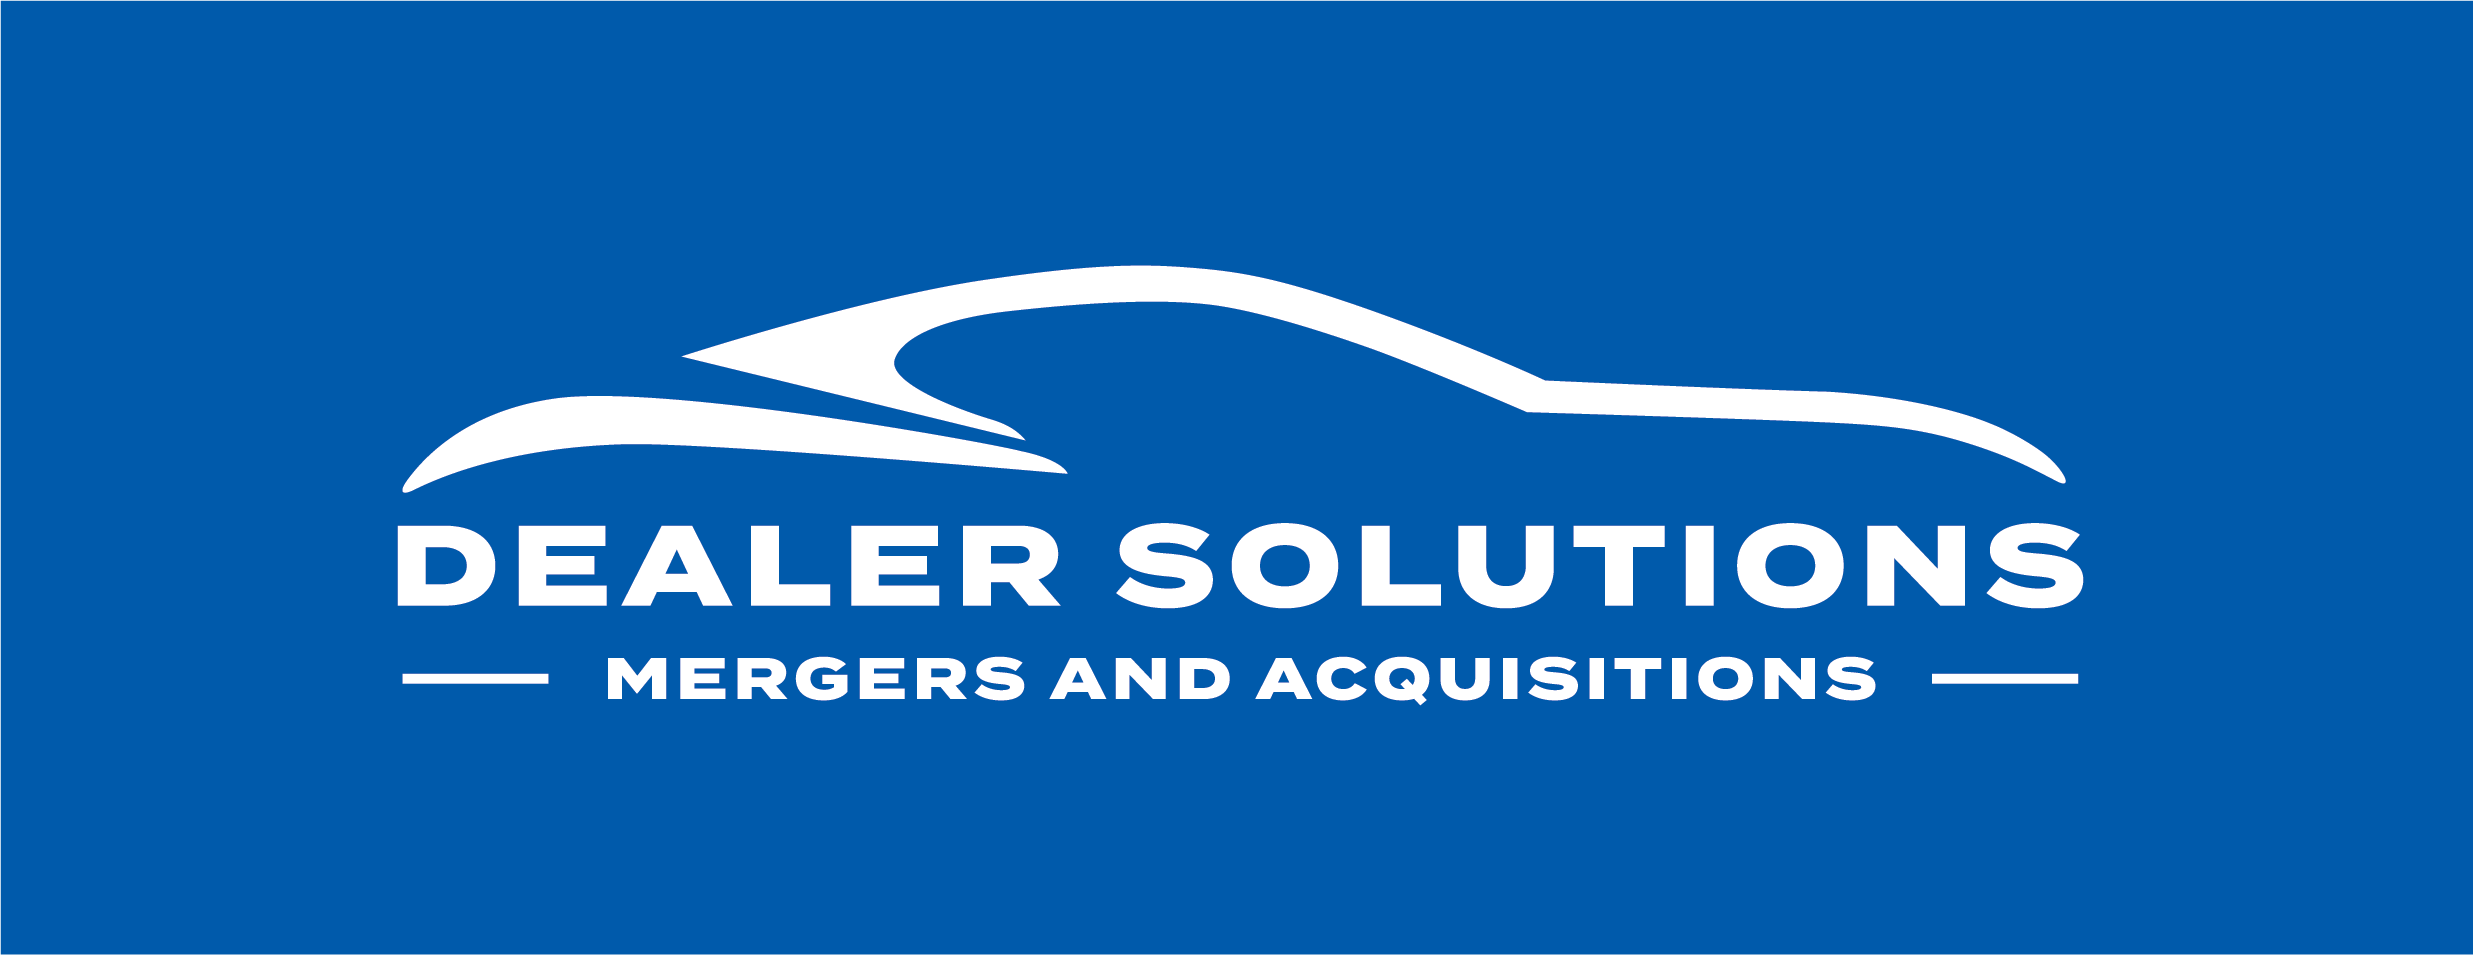 dealer solutions mergers and acquisitions